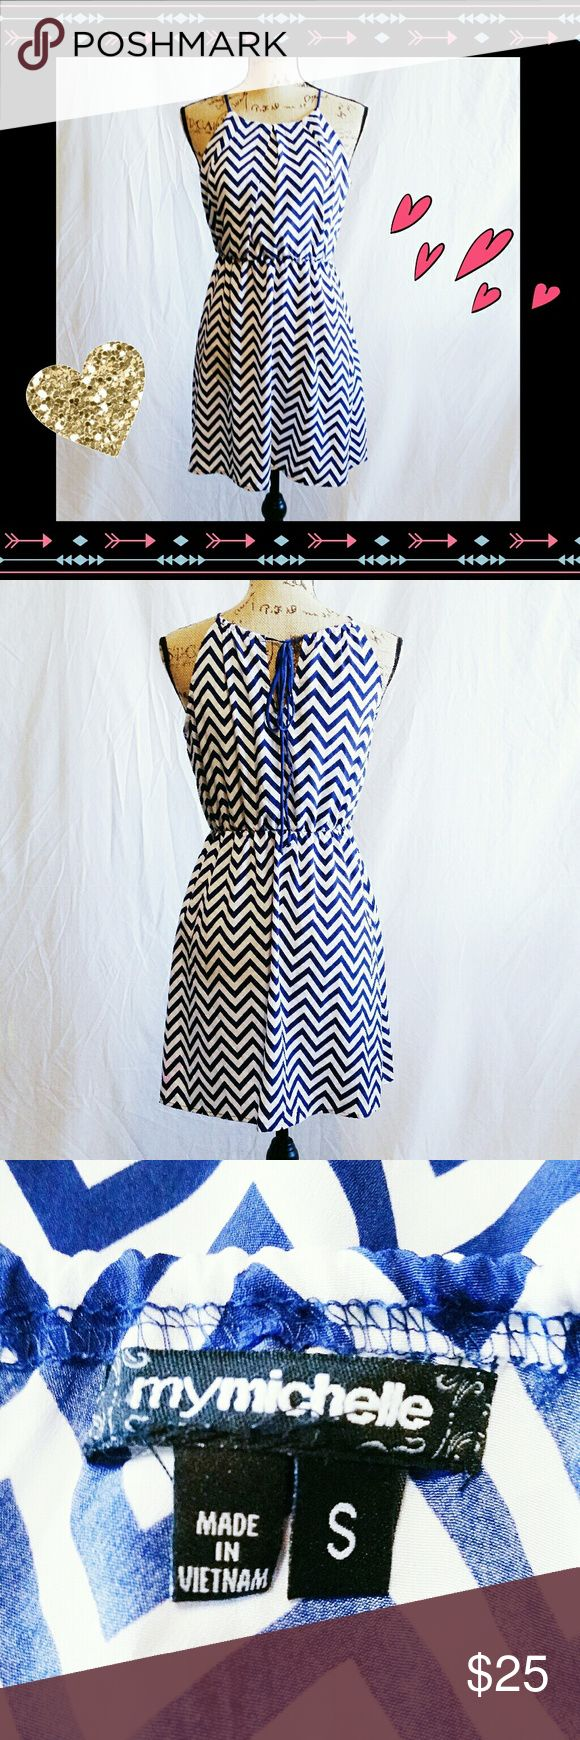 My Michelle Chevron Print Dress - Size S Flirty blue & white chevron print My Michelle strappy midi dress. Adjustable top strap tires over keyhole in back. Bra shelf lining. Excellent used condition. Size Small. 100% polyester. Hand wash cold & line dry. Make an offer! My Michelle Dresses Midi